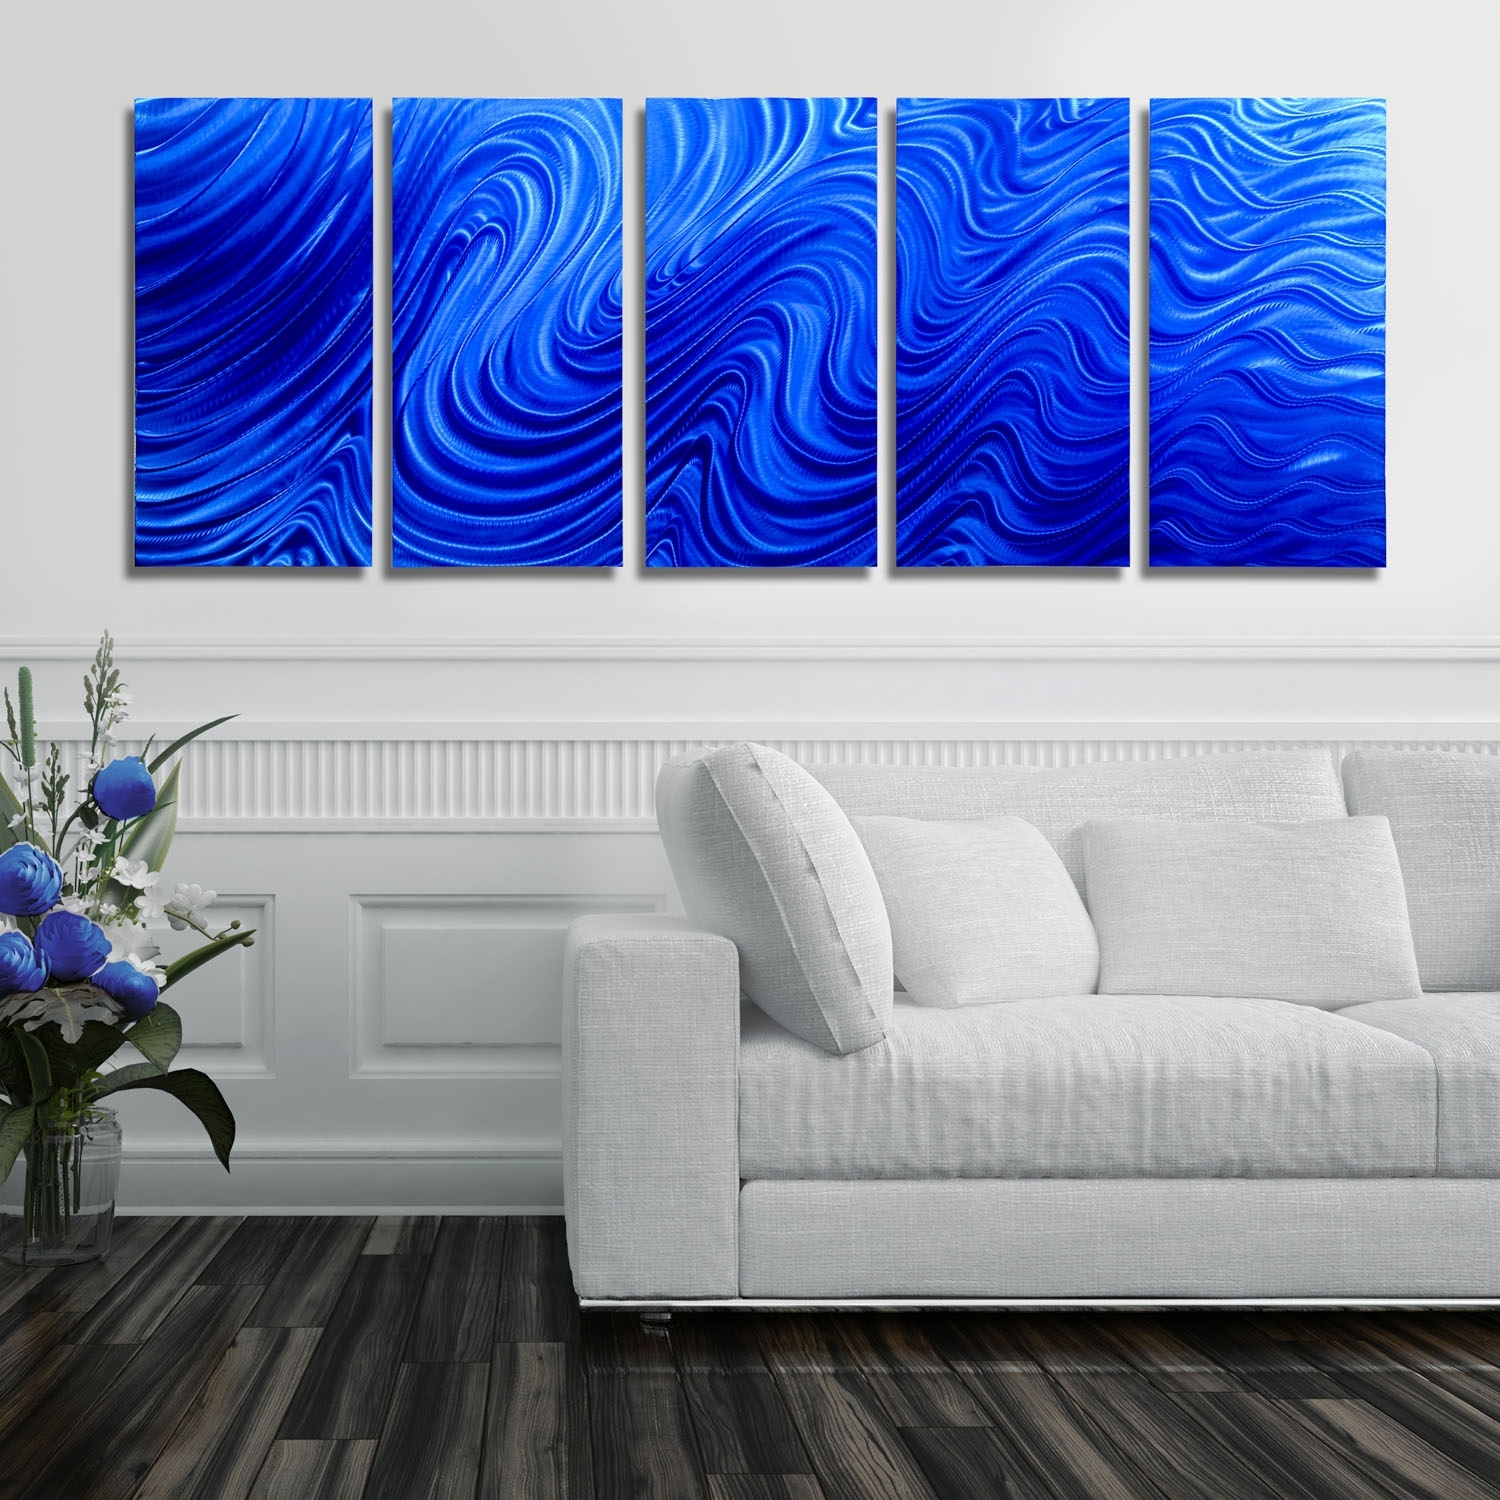 Blue Hypnotic Sands – Blue Four Panel Abstract Metal Wall Art Inside Best And Newest Abstract Metal Wall Art Panels (View 7 of 20)